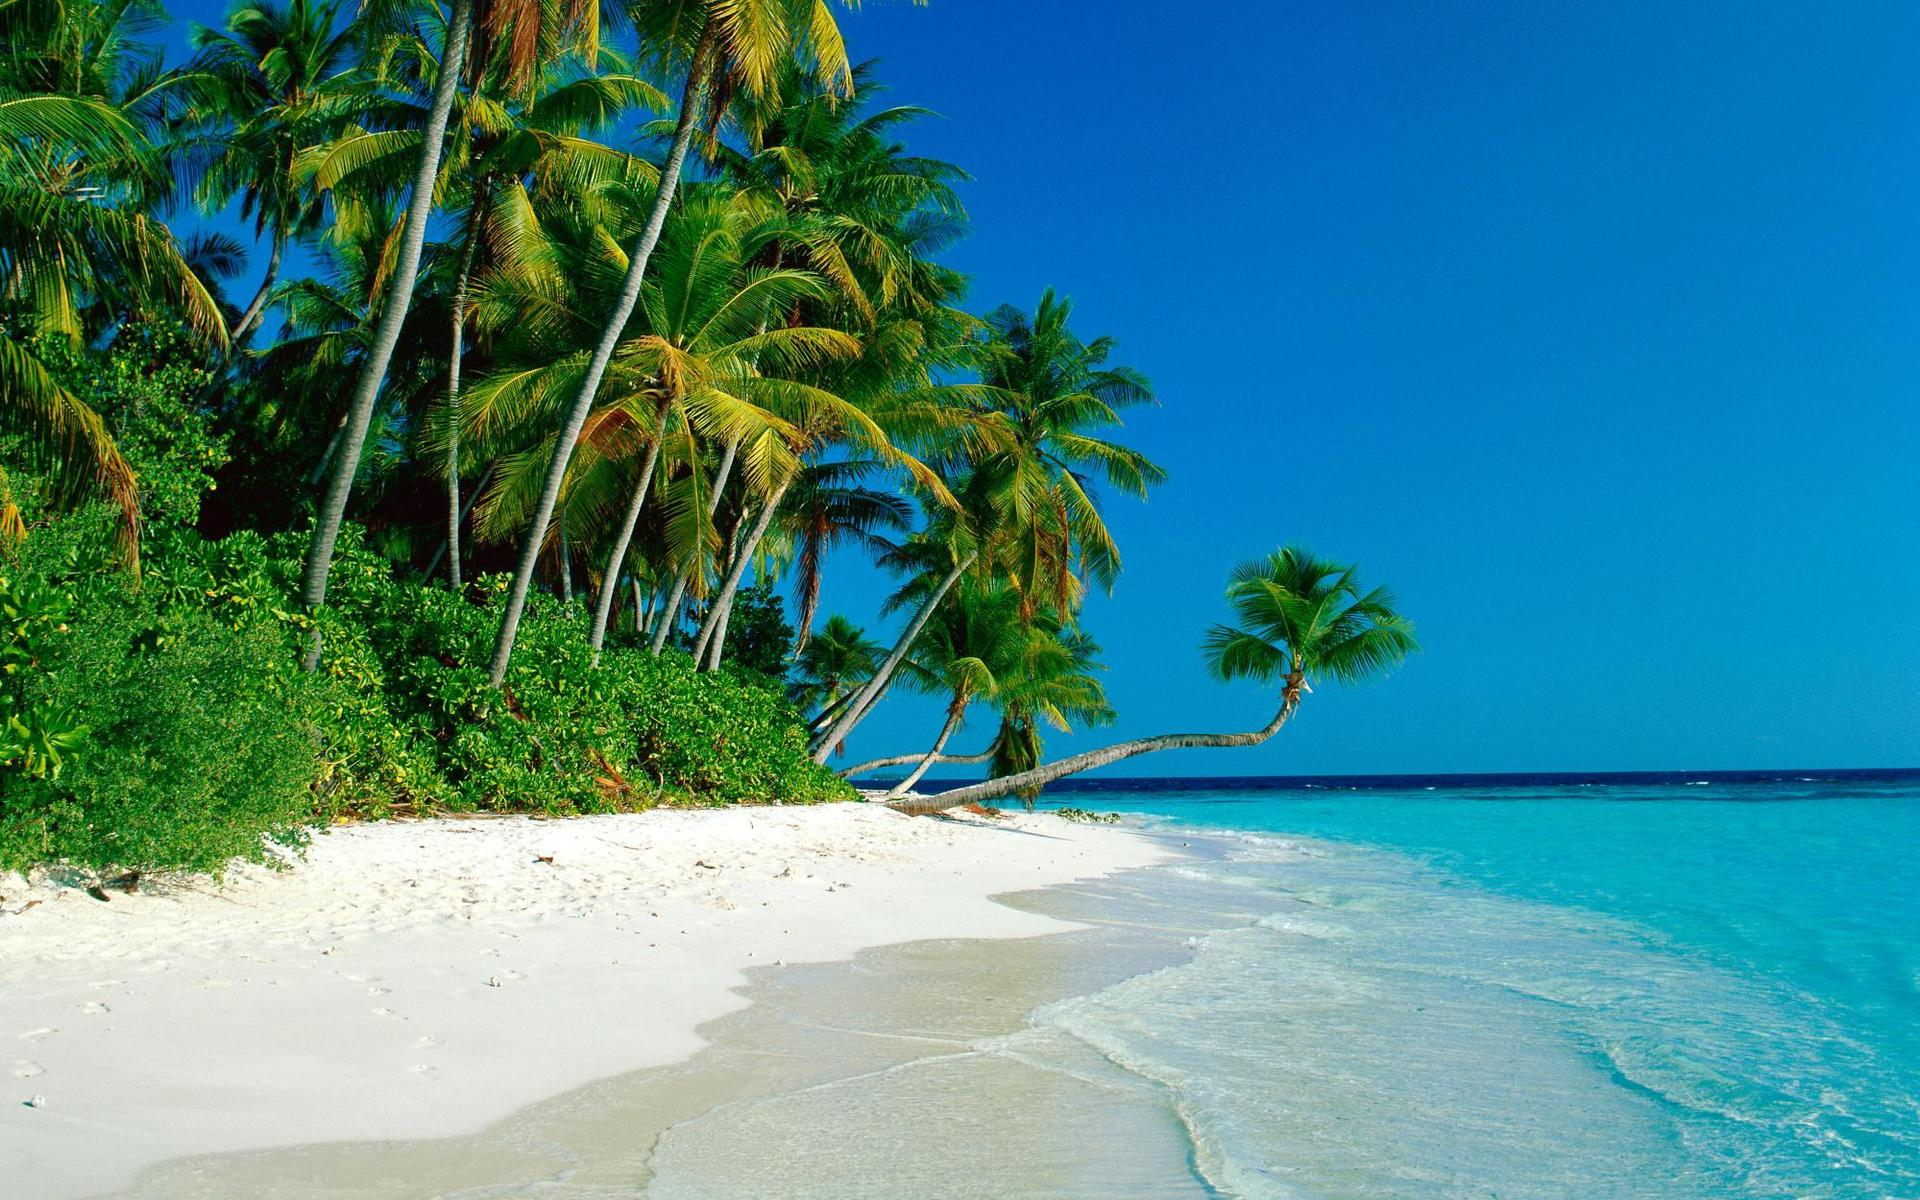 The Cook Islands truly are a tropical paradise. Click the photo for the image source